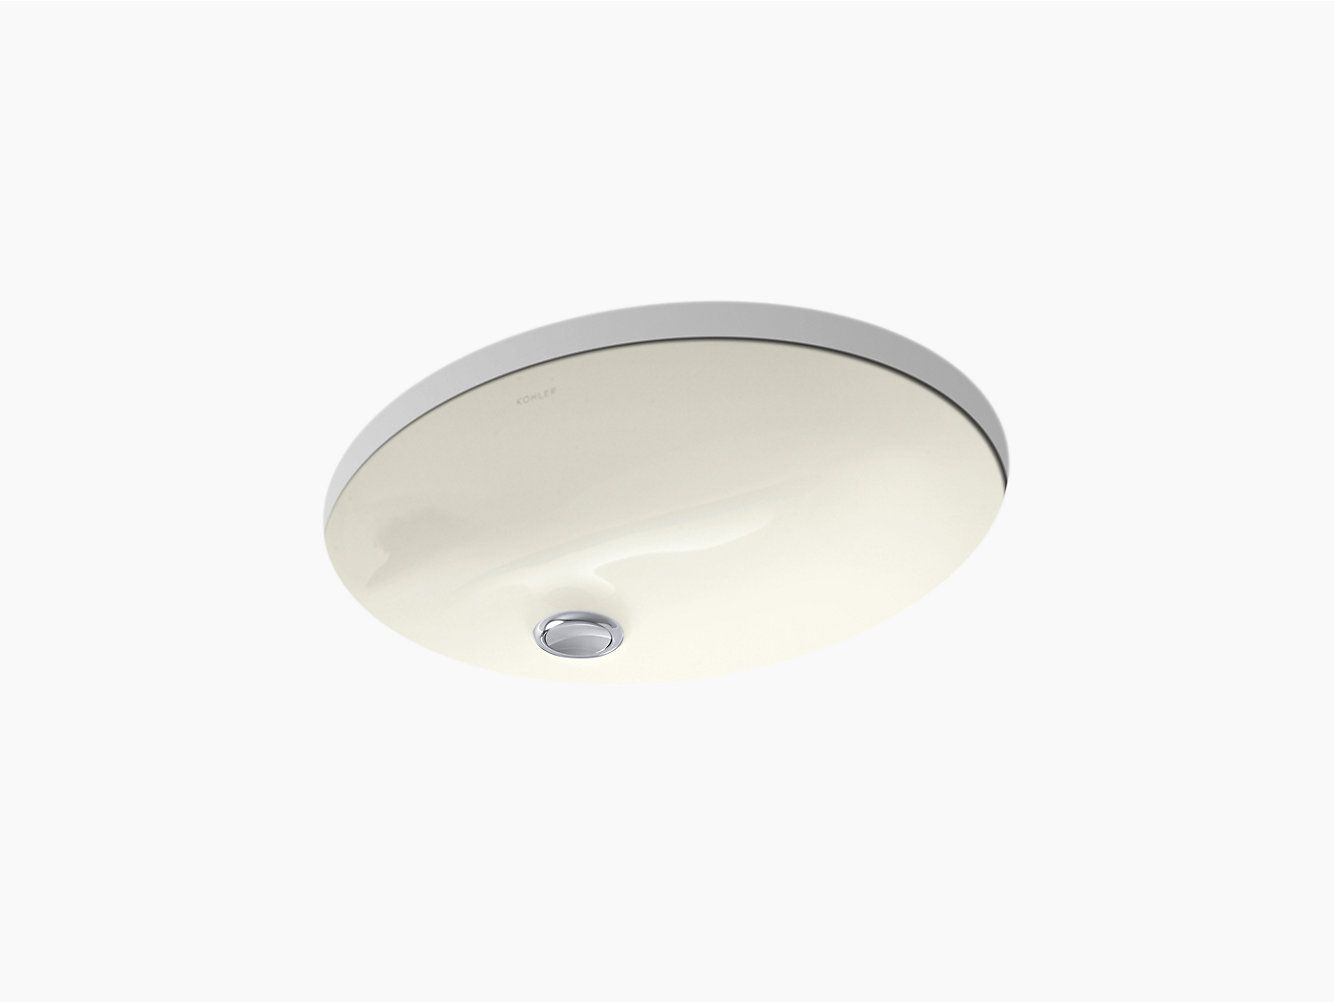 K 2209 Caxton Undermount Sink 15 By 12 Inches Kohler Sink Undercounter Sink Modern Bathroom Decor